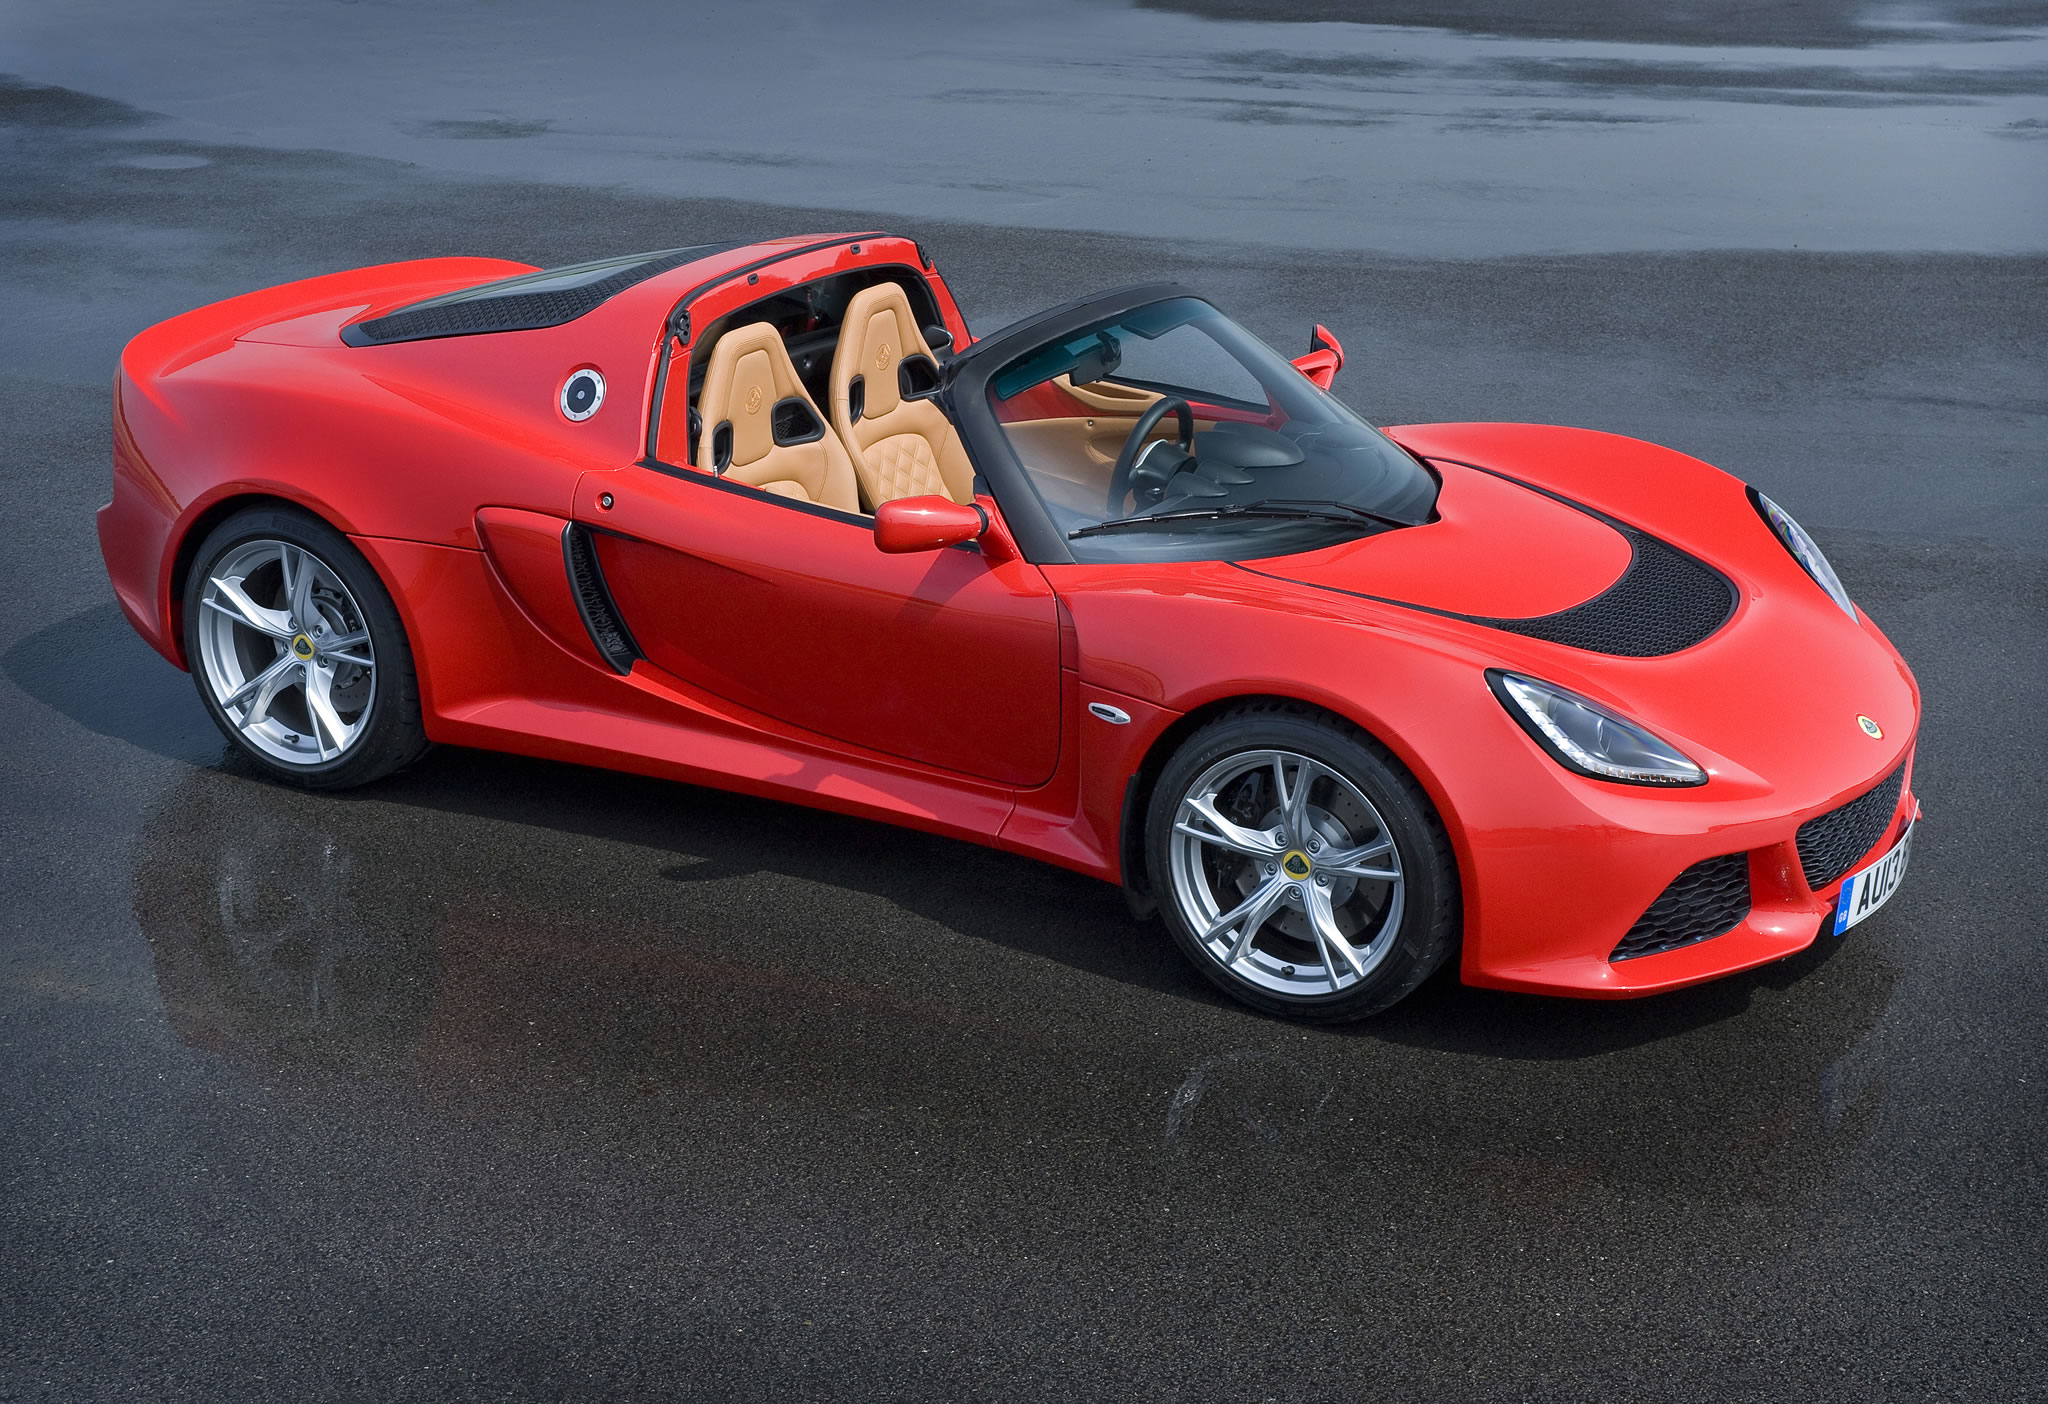 2015 Lotus Exige S Roadster Front Photo Ardent Red